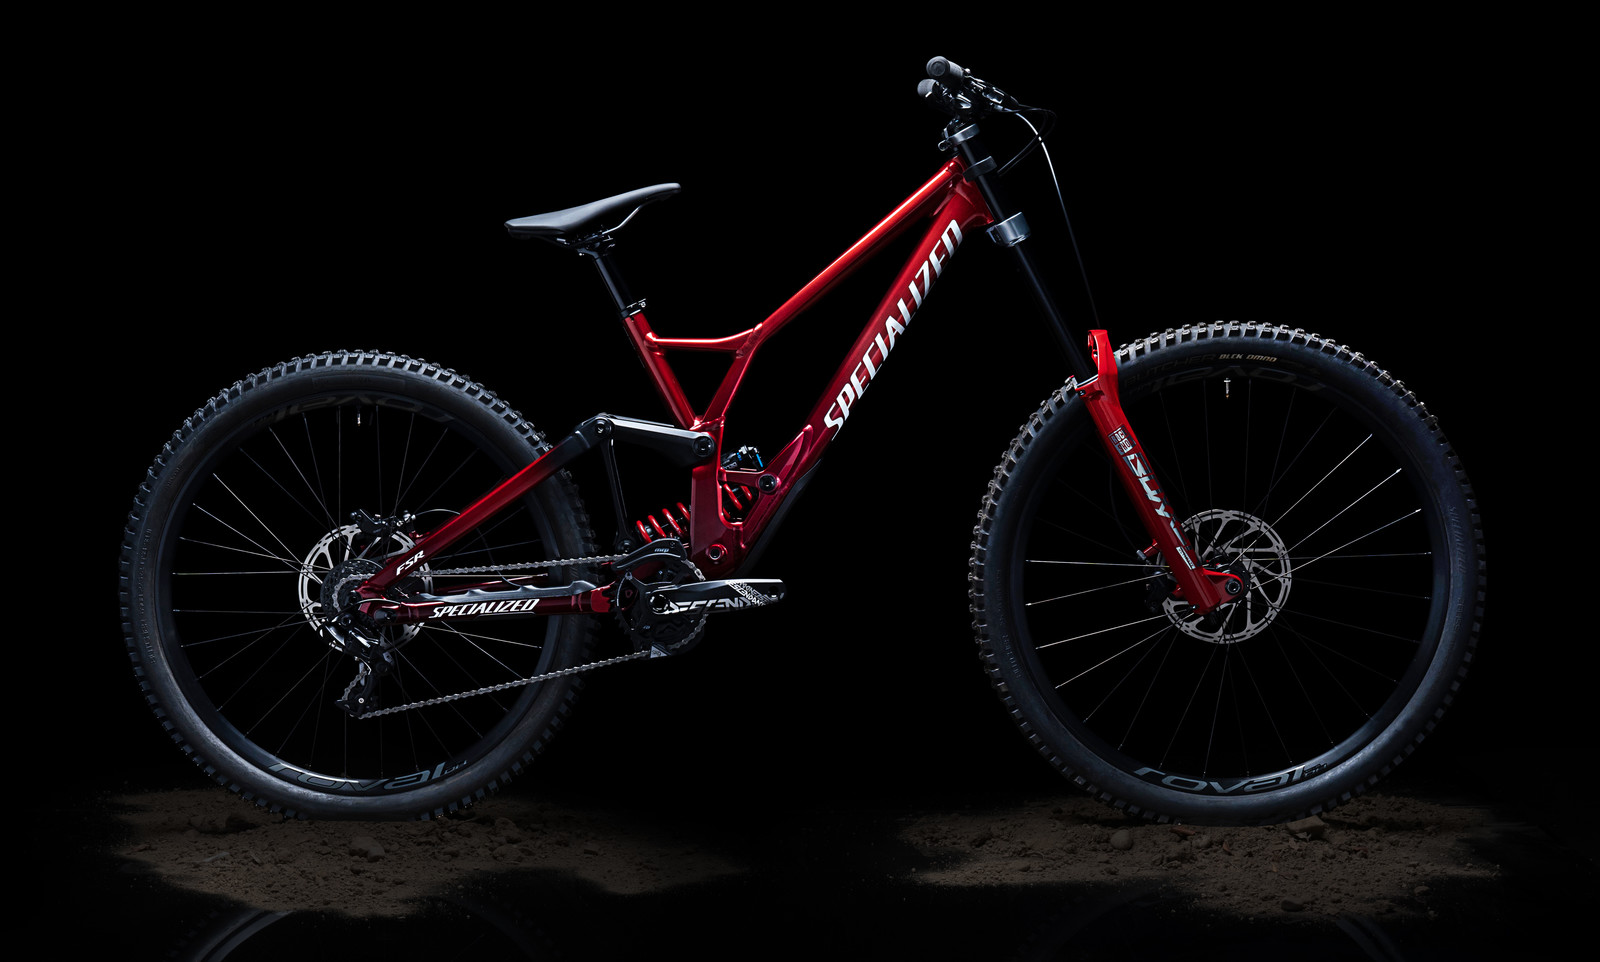 Specialized (Officially) Introduces a Mixed-Wheel Demo DH Bike